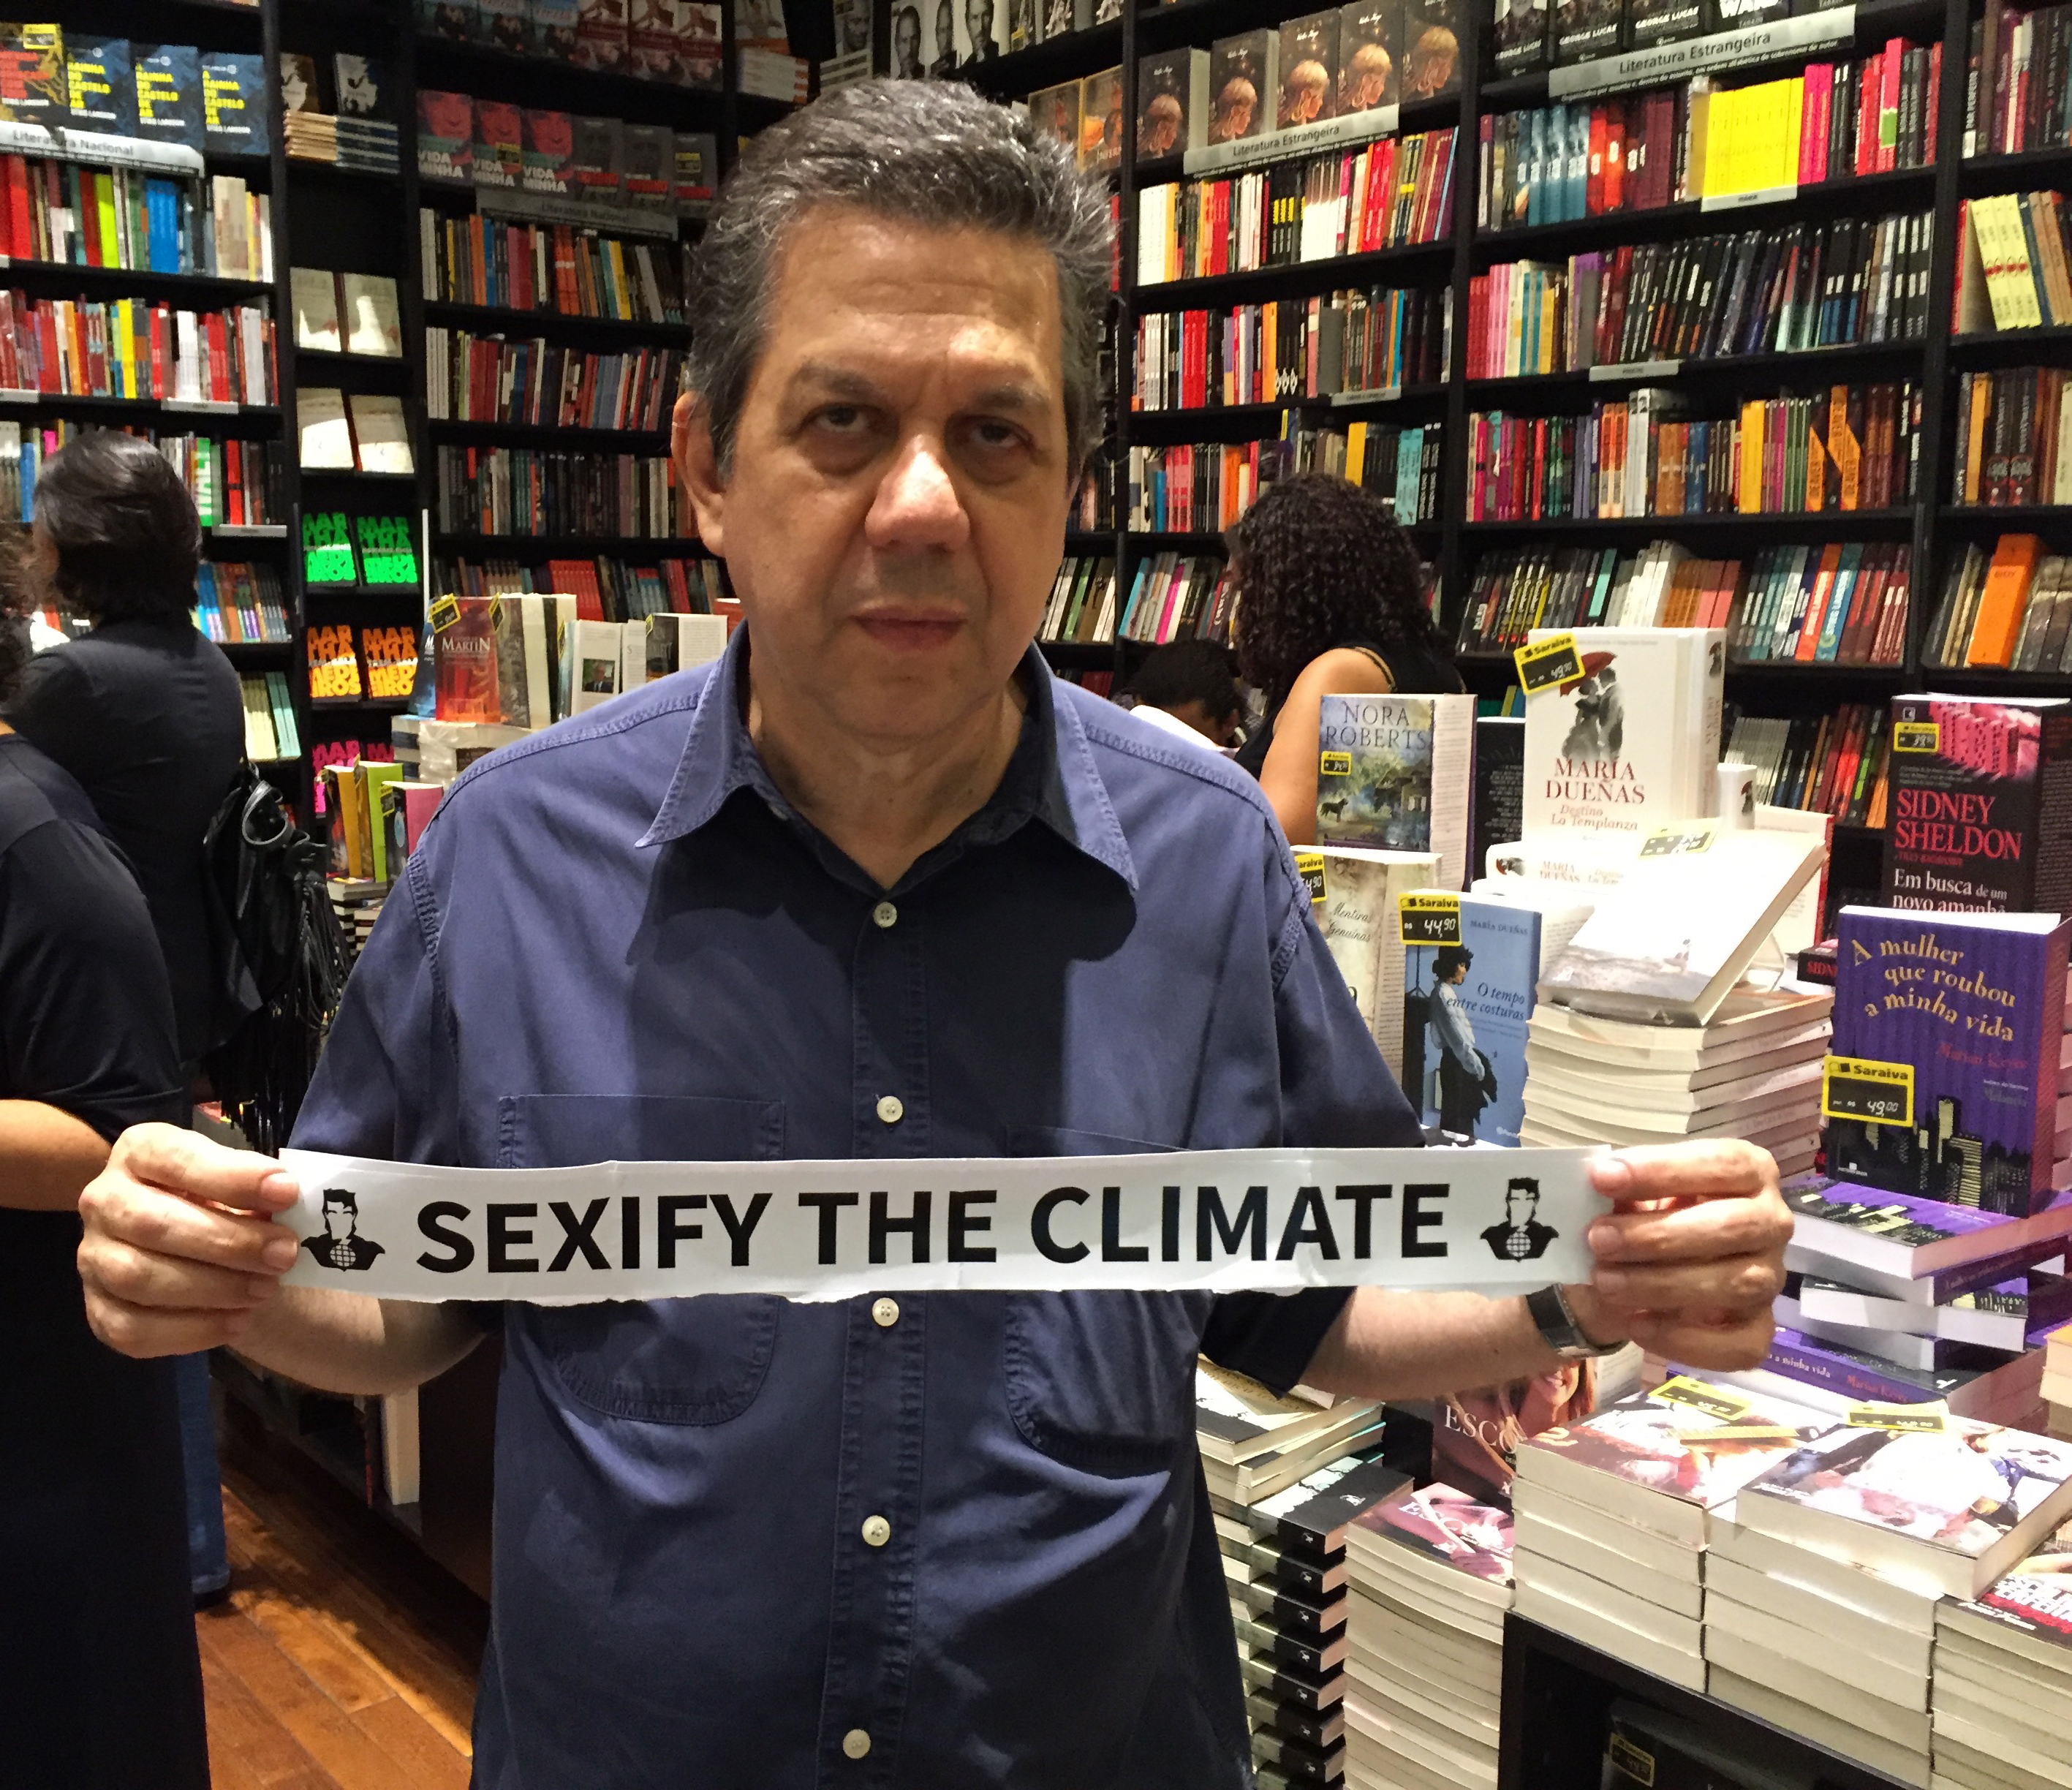 #SexifyTheClimate